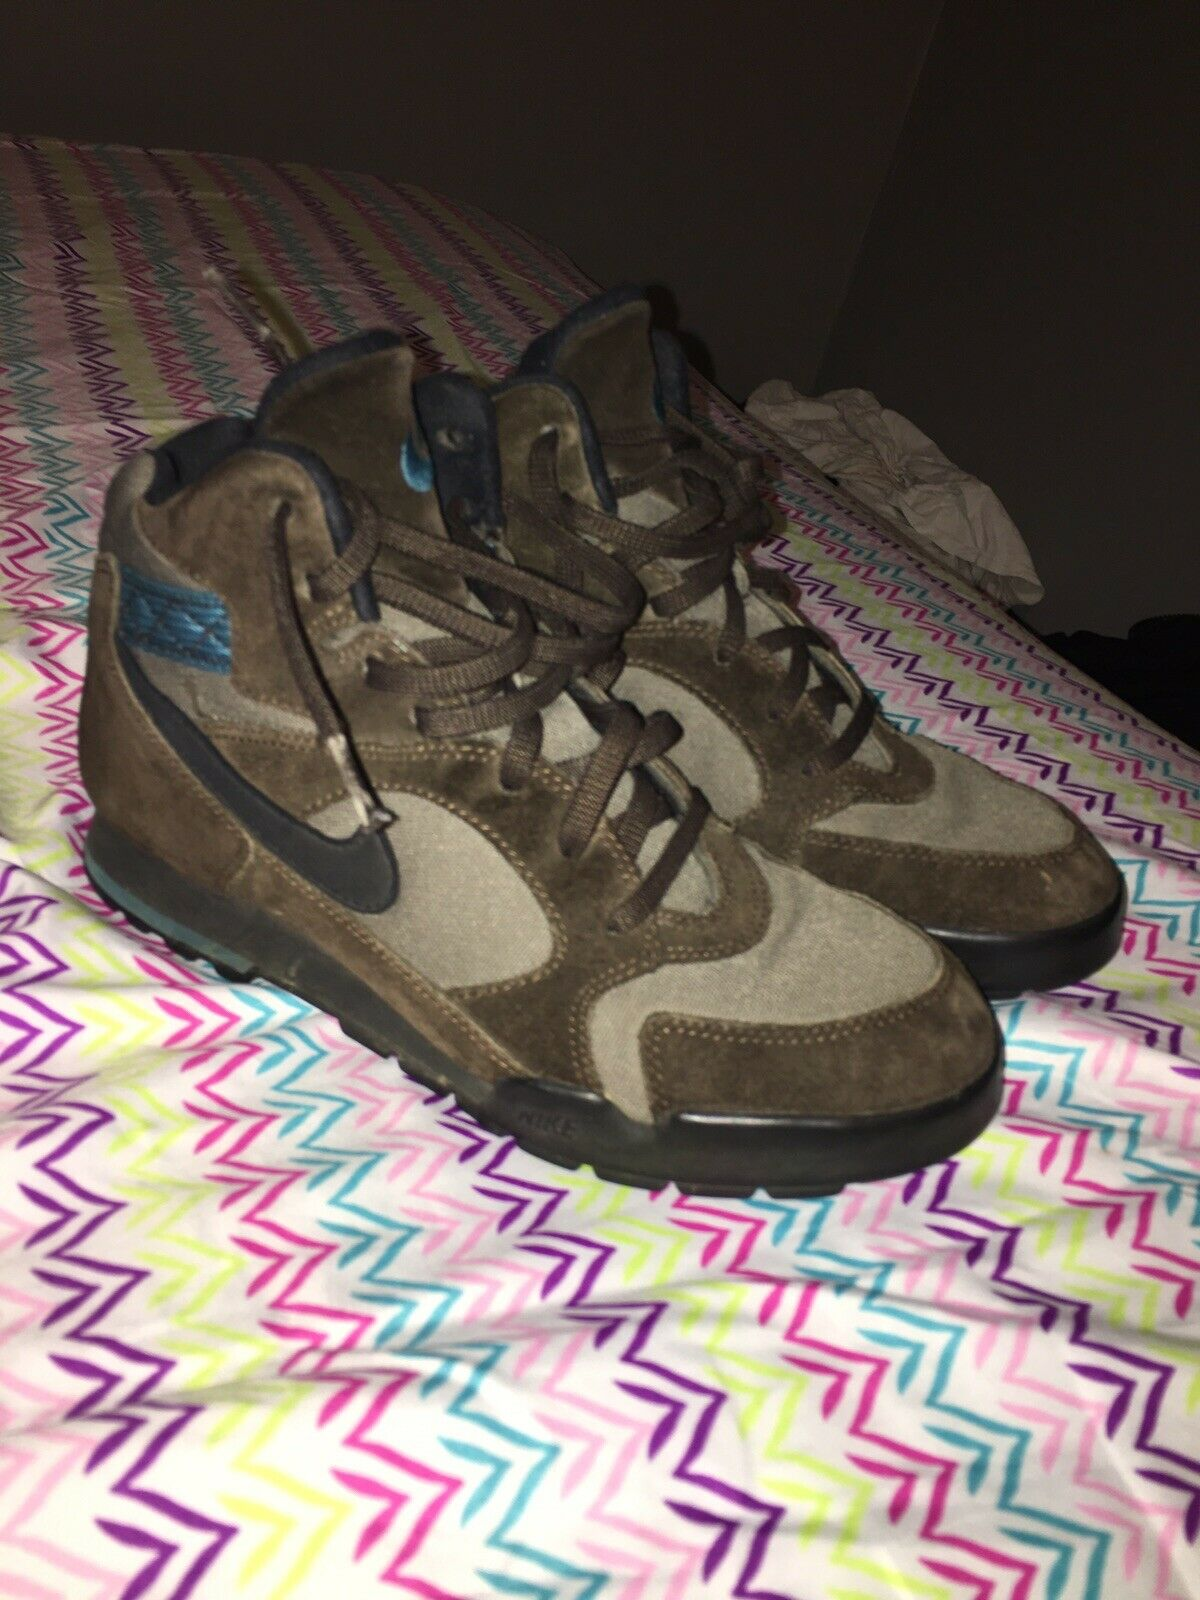 Vintage 90s Nike ACG Hiking Boots Size 8